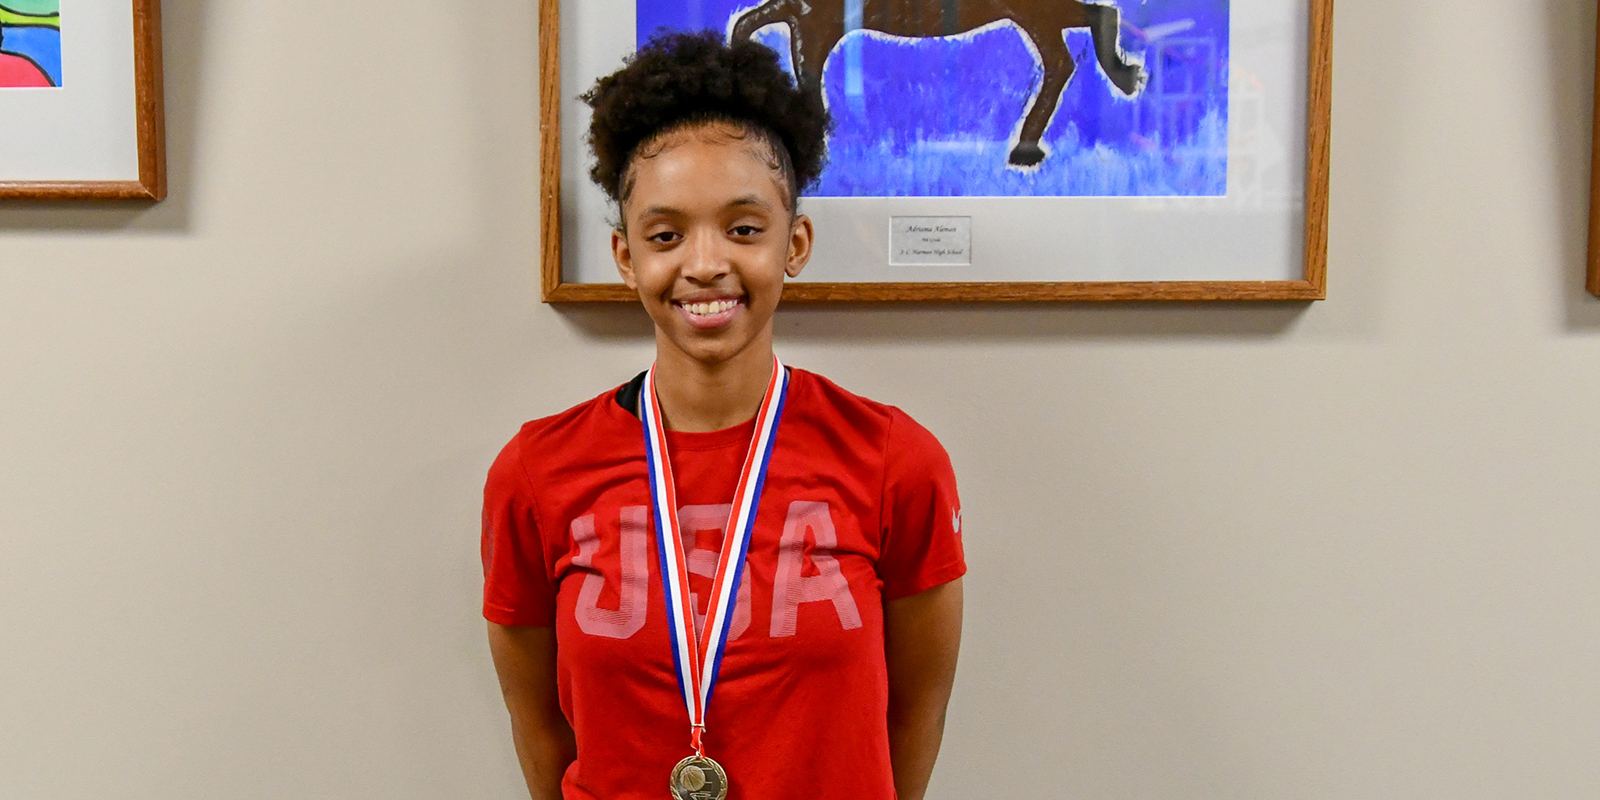 KCAL Defensive Player of the Year (Girls Basketball) Jordyn Rowe